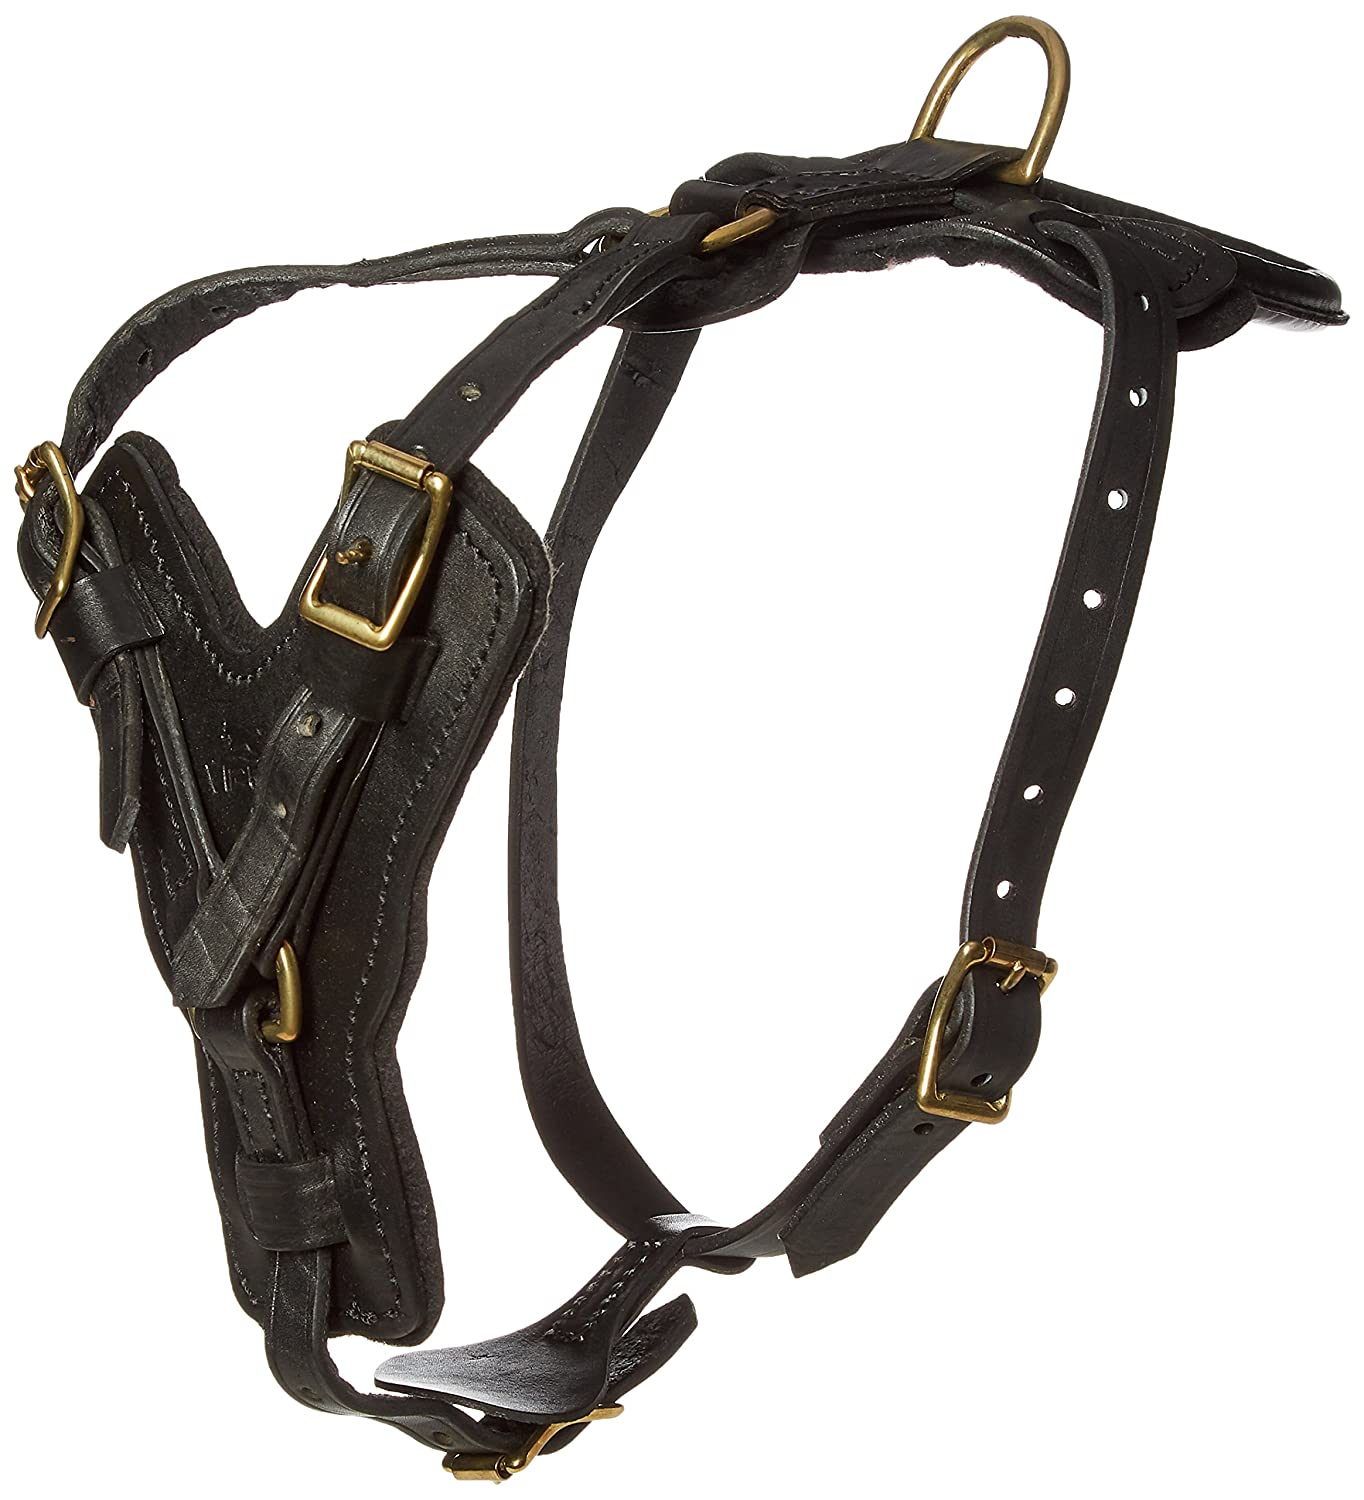 Viper Typhoon Multi-Function Leather Dog Pet Harness Black or Brown for Large Dogs Tracking Predection Police, 26 -32 , Black